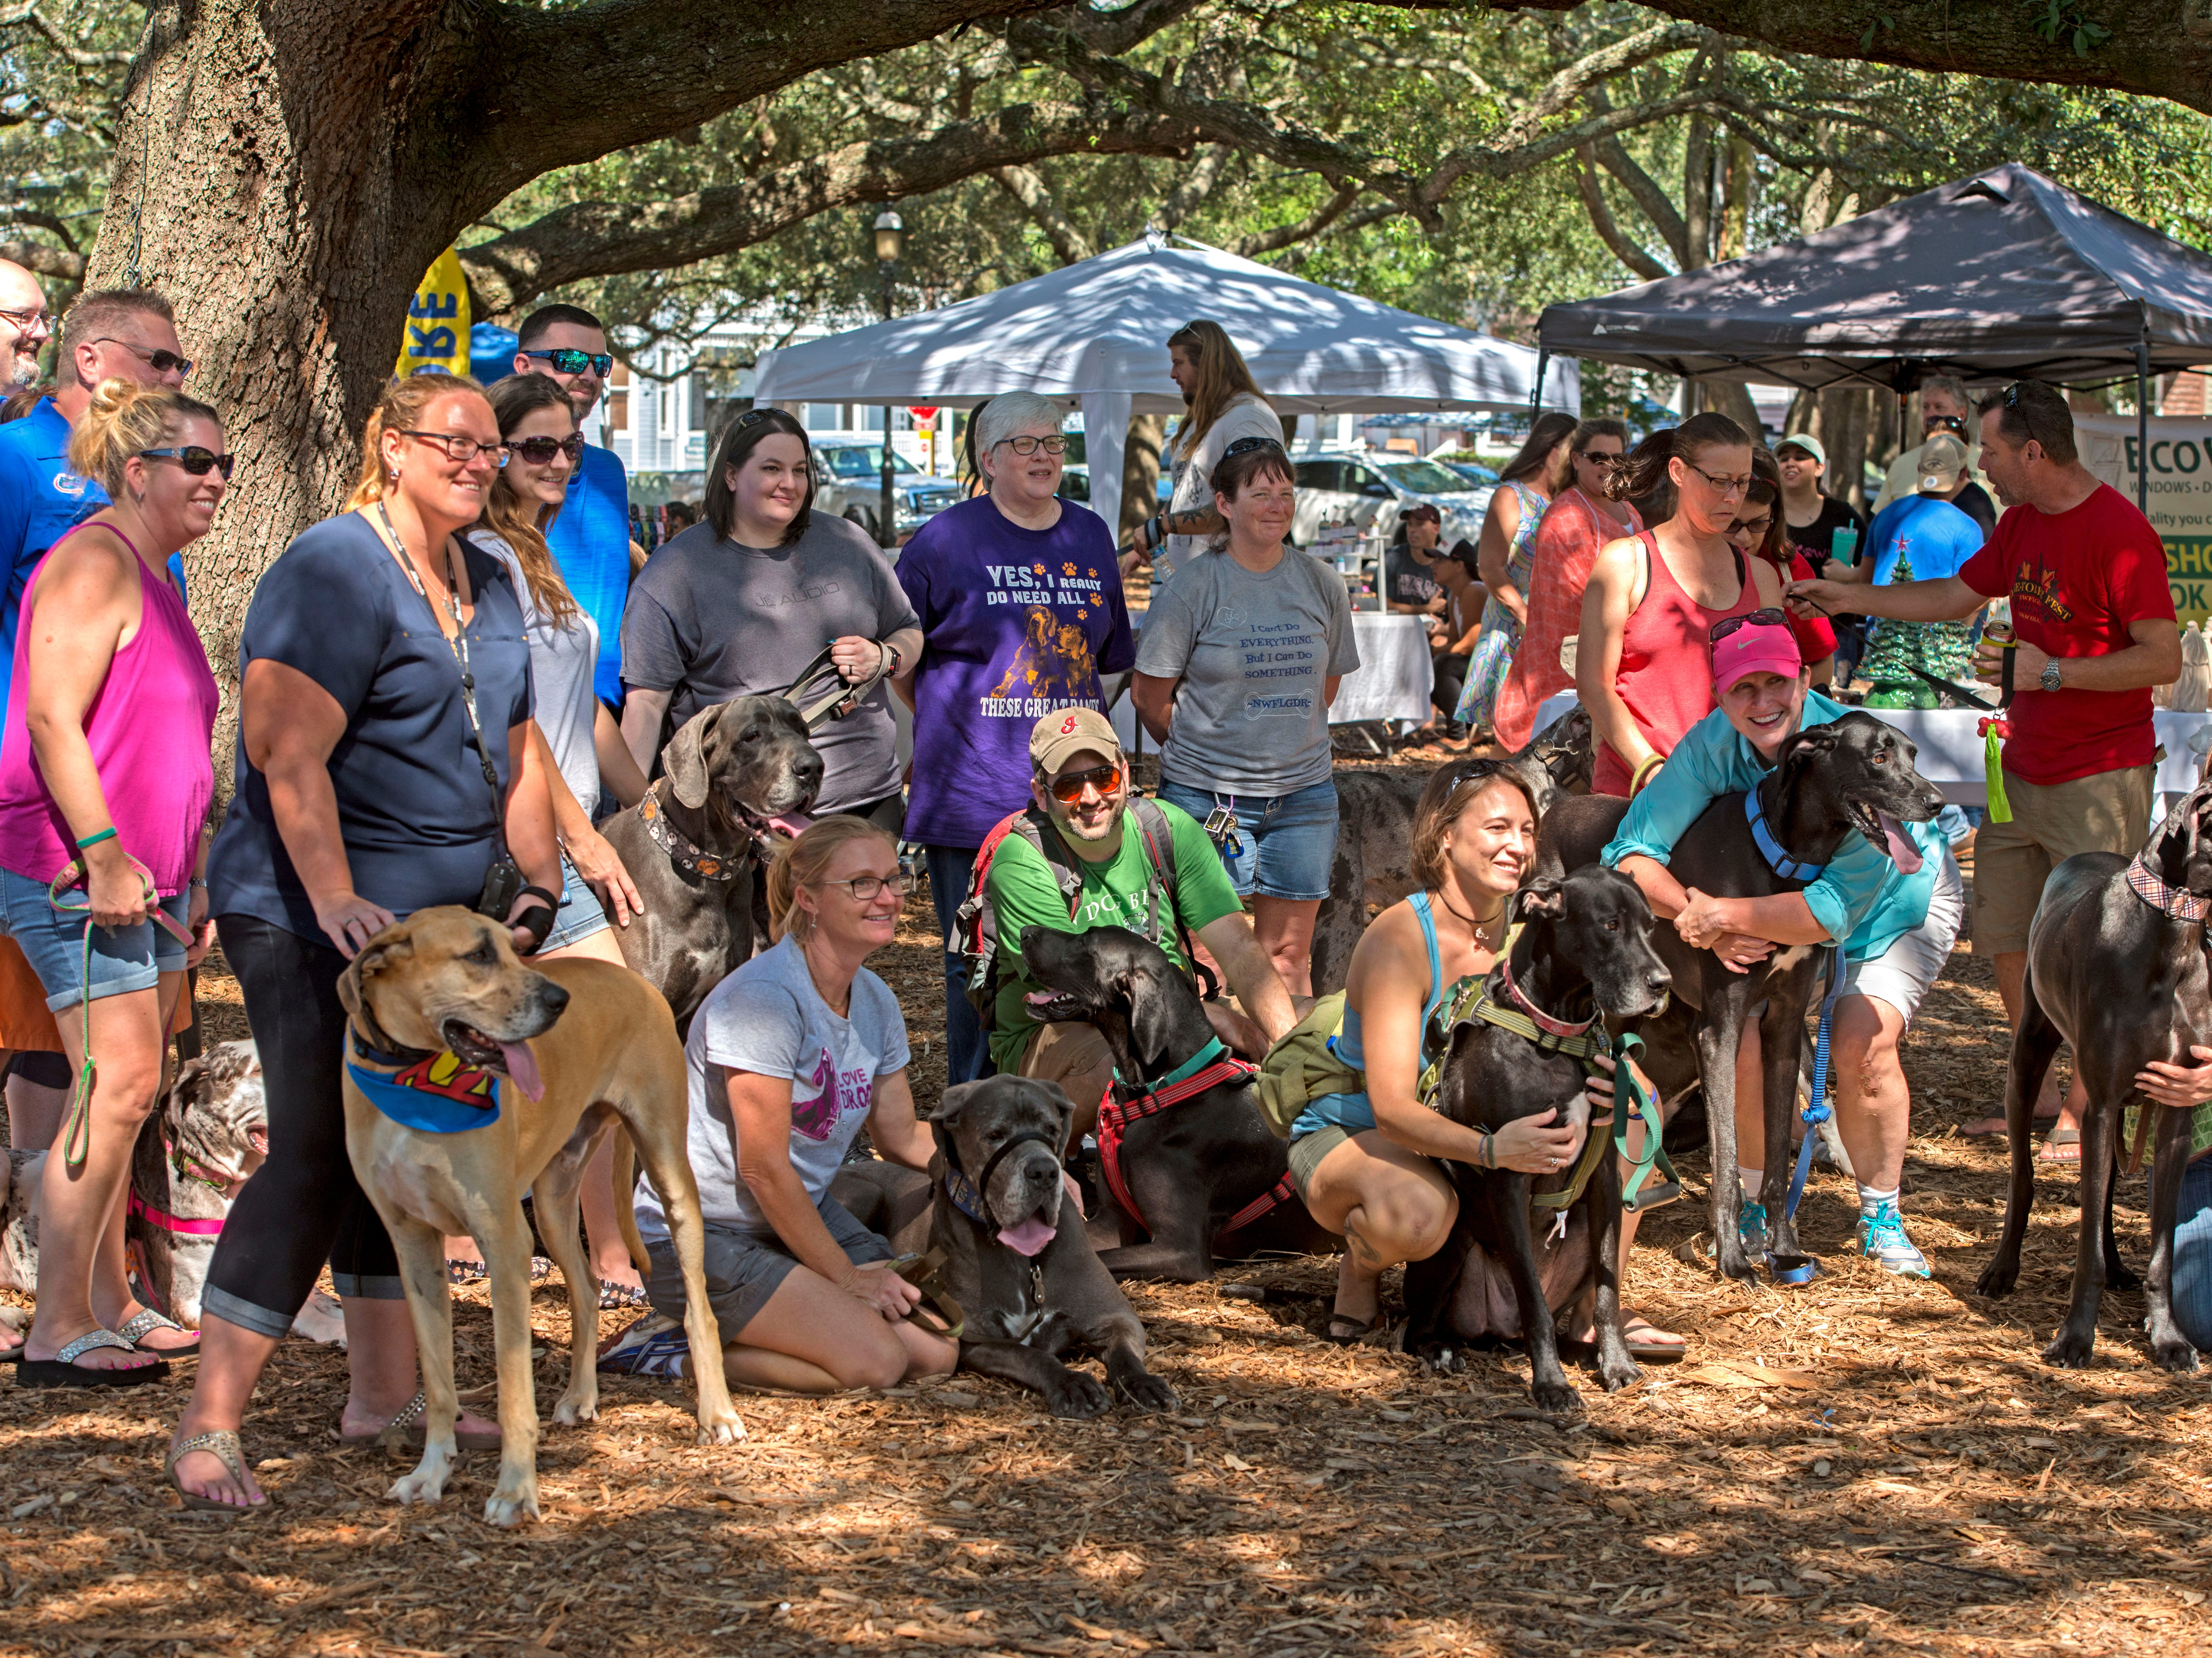 Great Dane owners pose for a family photo Saturday, October 6, 2018 during the third annual DaneTober Fest celebation and fundraising event at Seville Square. The event included music, per related merchandise,food and around two dozen aoptable Great Danes.